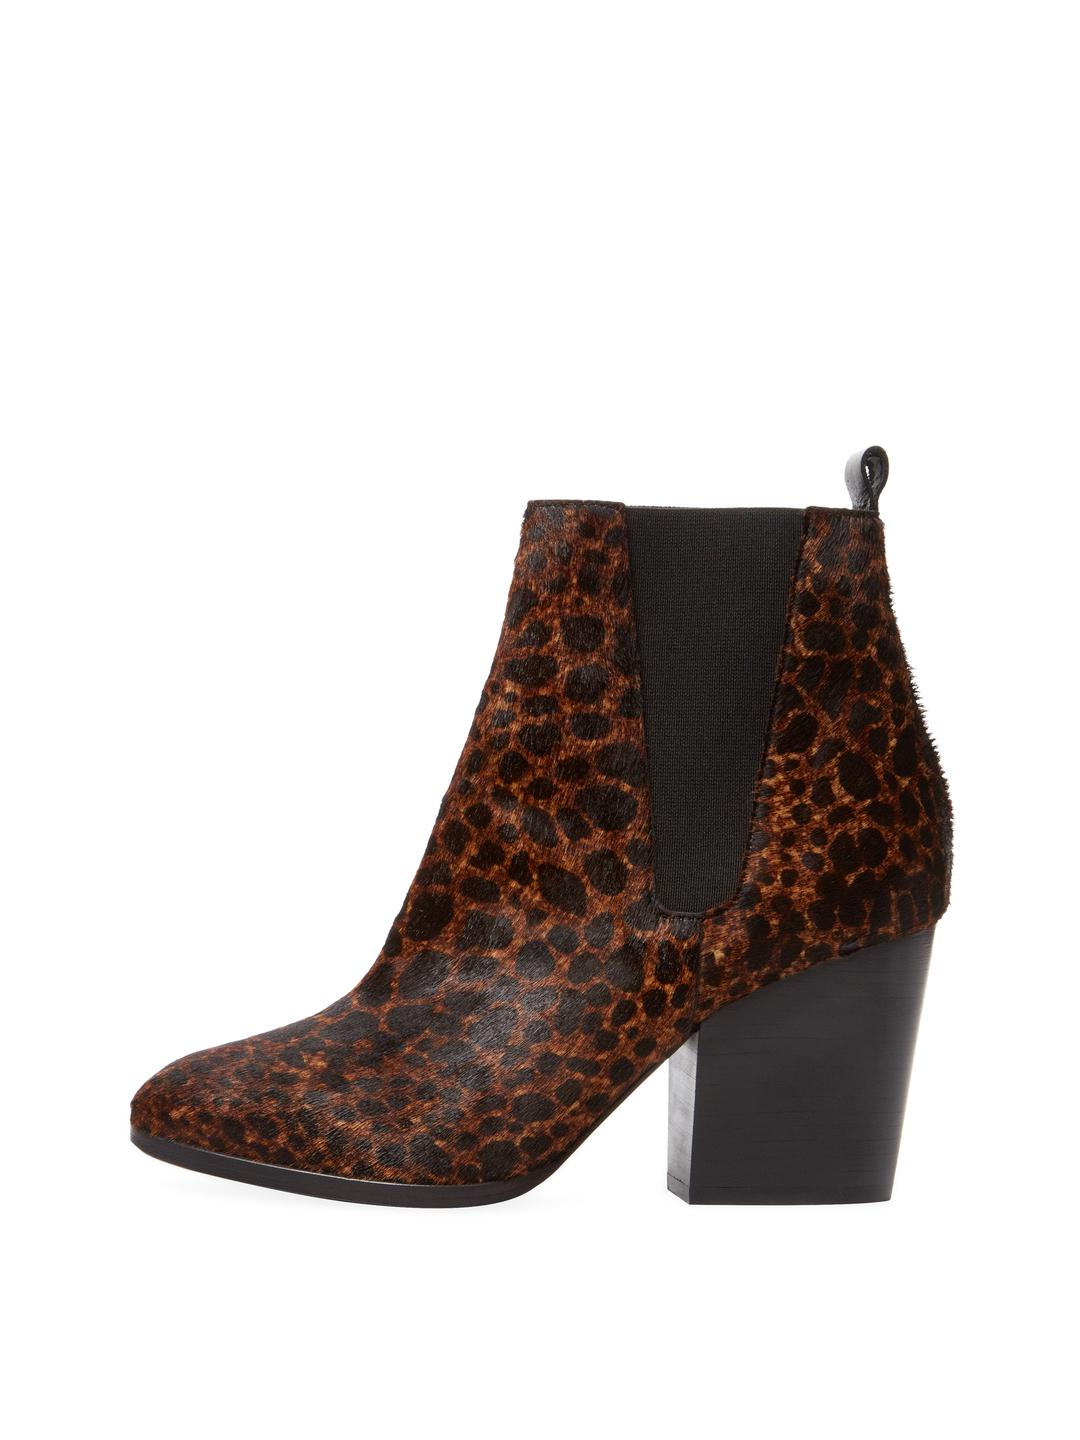 90fc673c54a5 The Kooples Pony Hair Ankle Bootie in Brown - Lyst